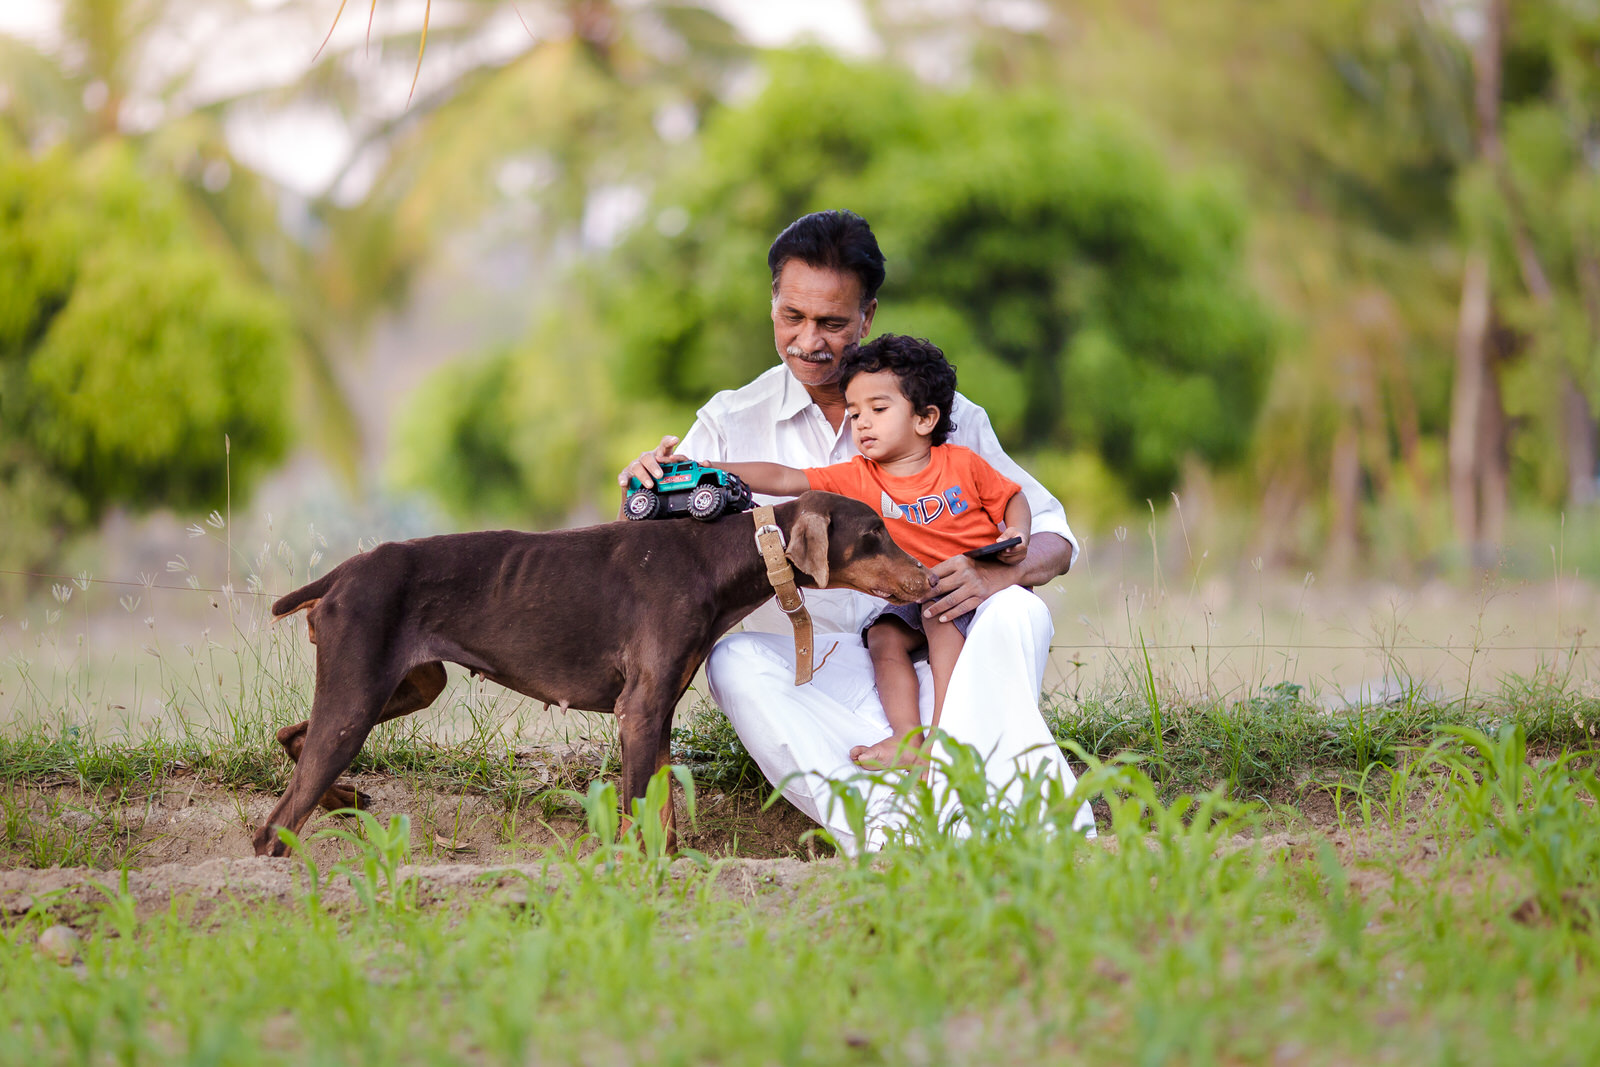 20150328-Sahas-With-Dog-in-fileds-138-Edit.jpg